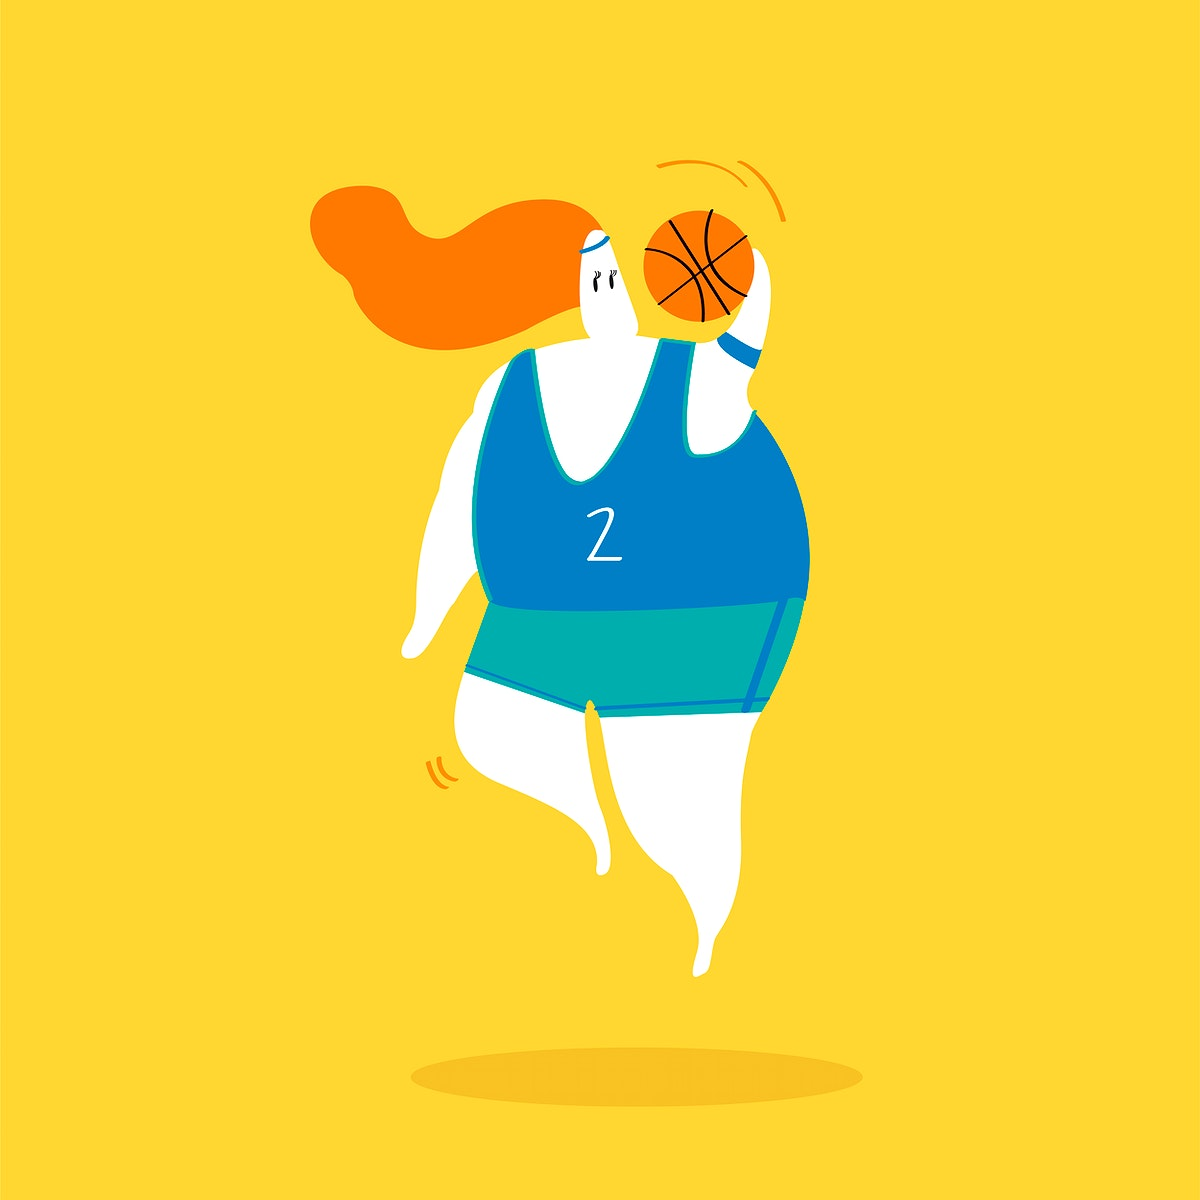 Character illustration of a female basketball player